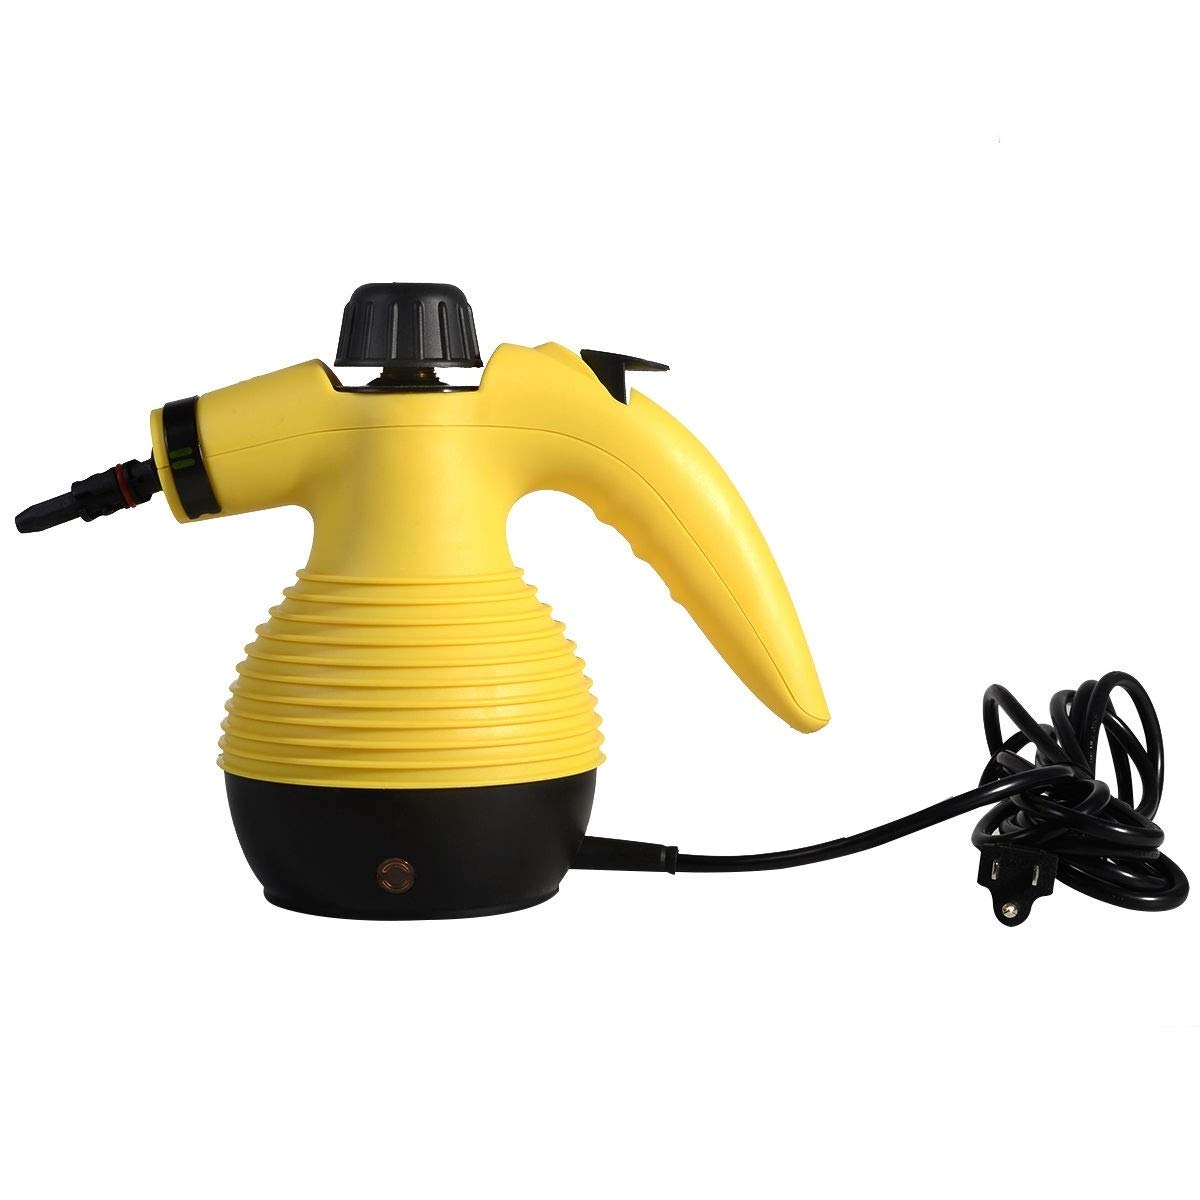 Mandycng Portable Electric Steam Cleaner 1050W 350ml, Energy Saver Stain Remover, Lightweight Steam Cleaner with Attachment Great for Kitchen Marble Stovetop Wood Car Interior, Yellow by Mandycng